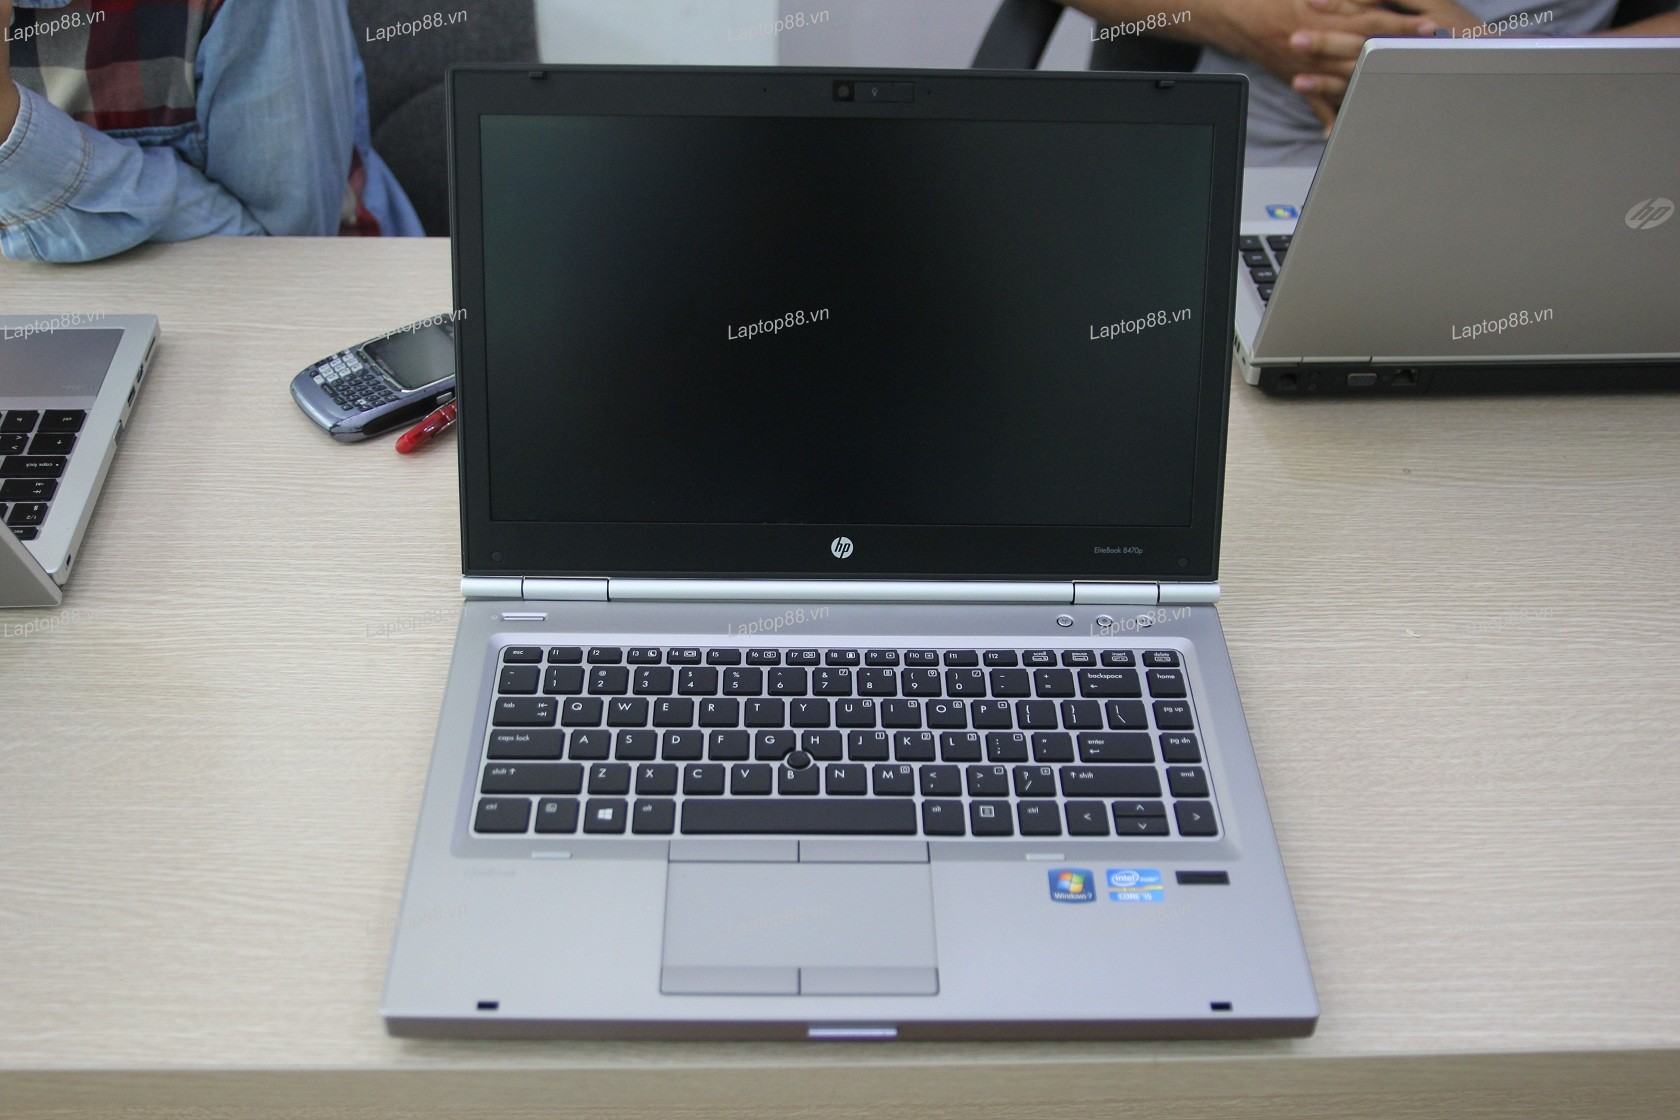 Laptop HP Elitebook 8470p cũ (Core i5 3320M, 4GB, 250GB, Intel HD Graphics 4000, 14 inch) - bảo hành 1 năm7